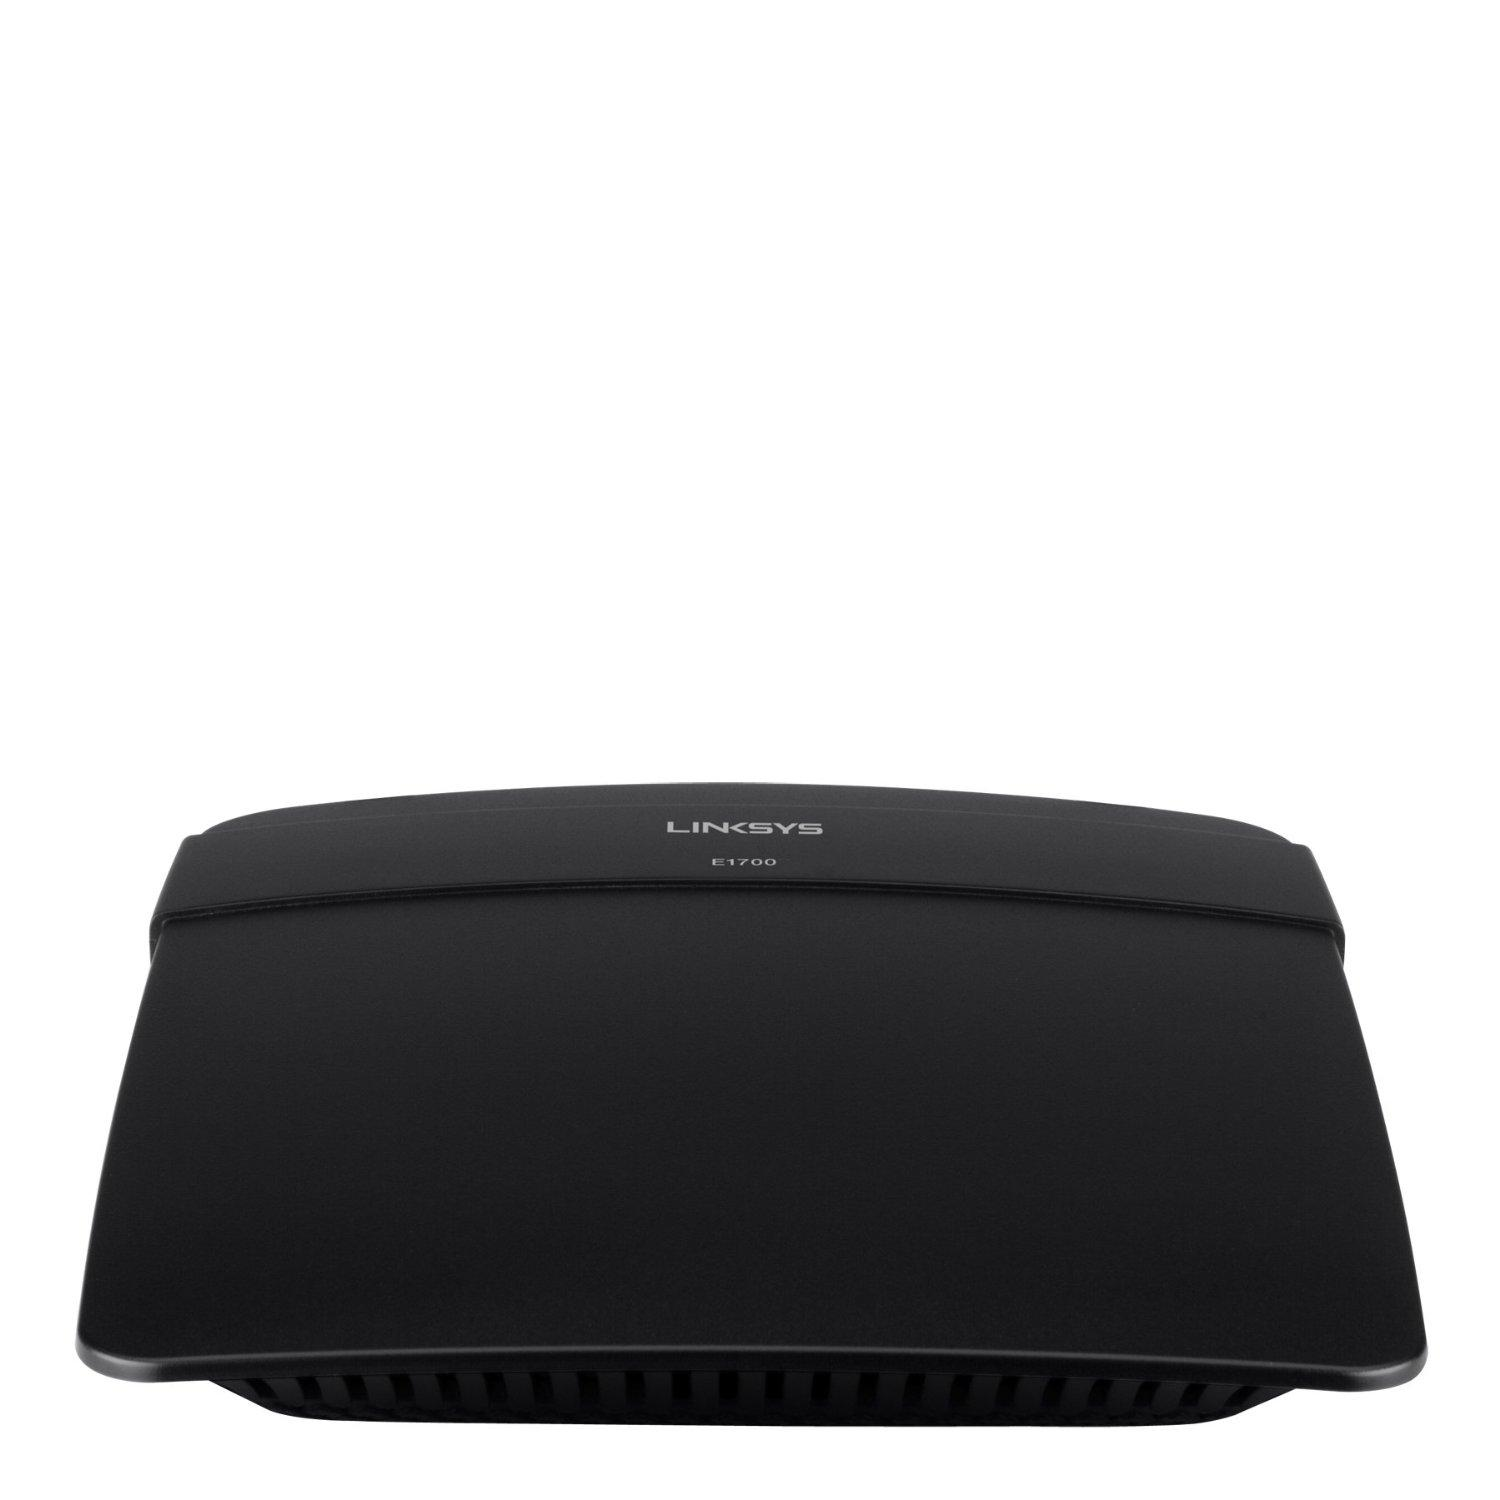 linksys n300 hookup N300 dual-bandwi-fi use your favorite browser to visit http://belkin range and follow the instructions that appear there step 5: after your setup is complete.